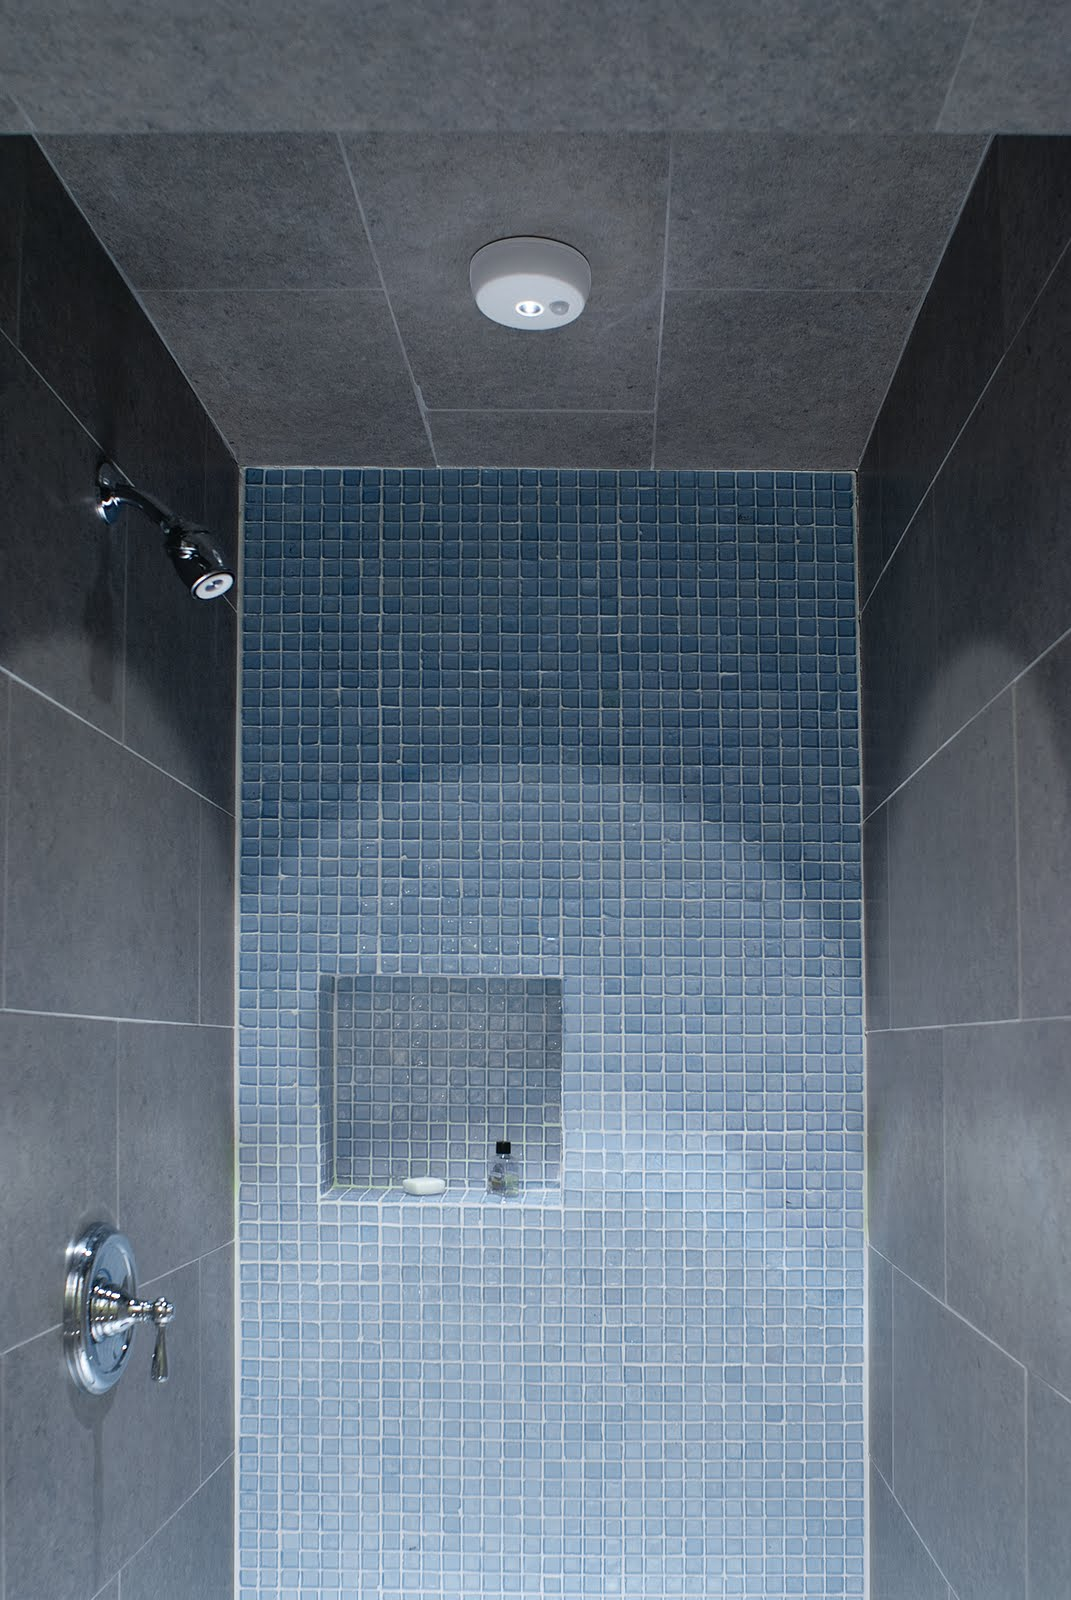 Exceptionnel Bright Wireless Shower Lights  The Best Way To Light A Dark Shower?